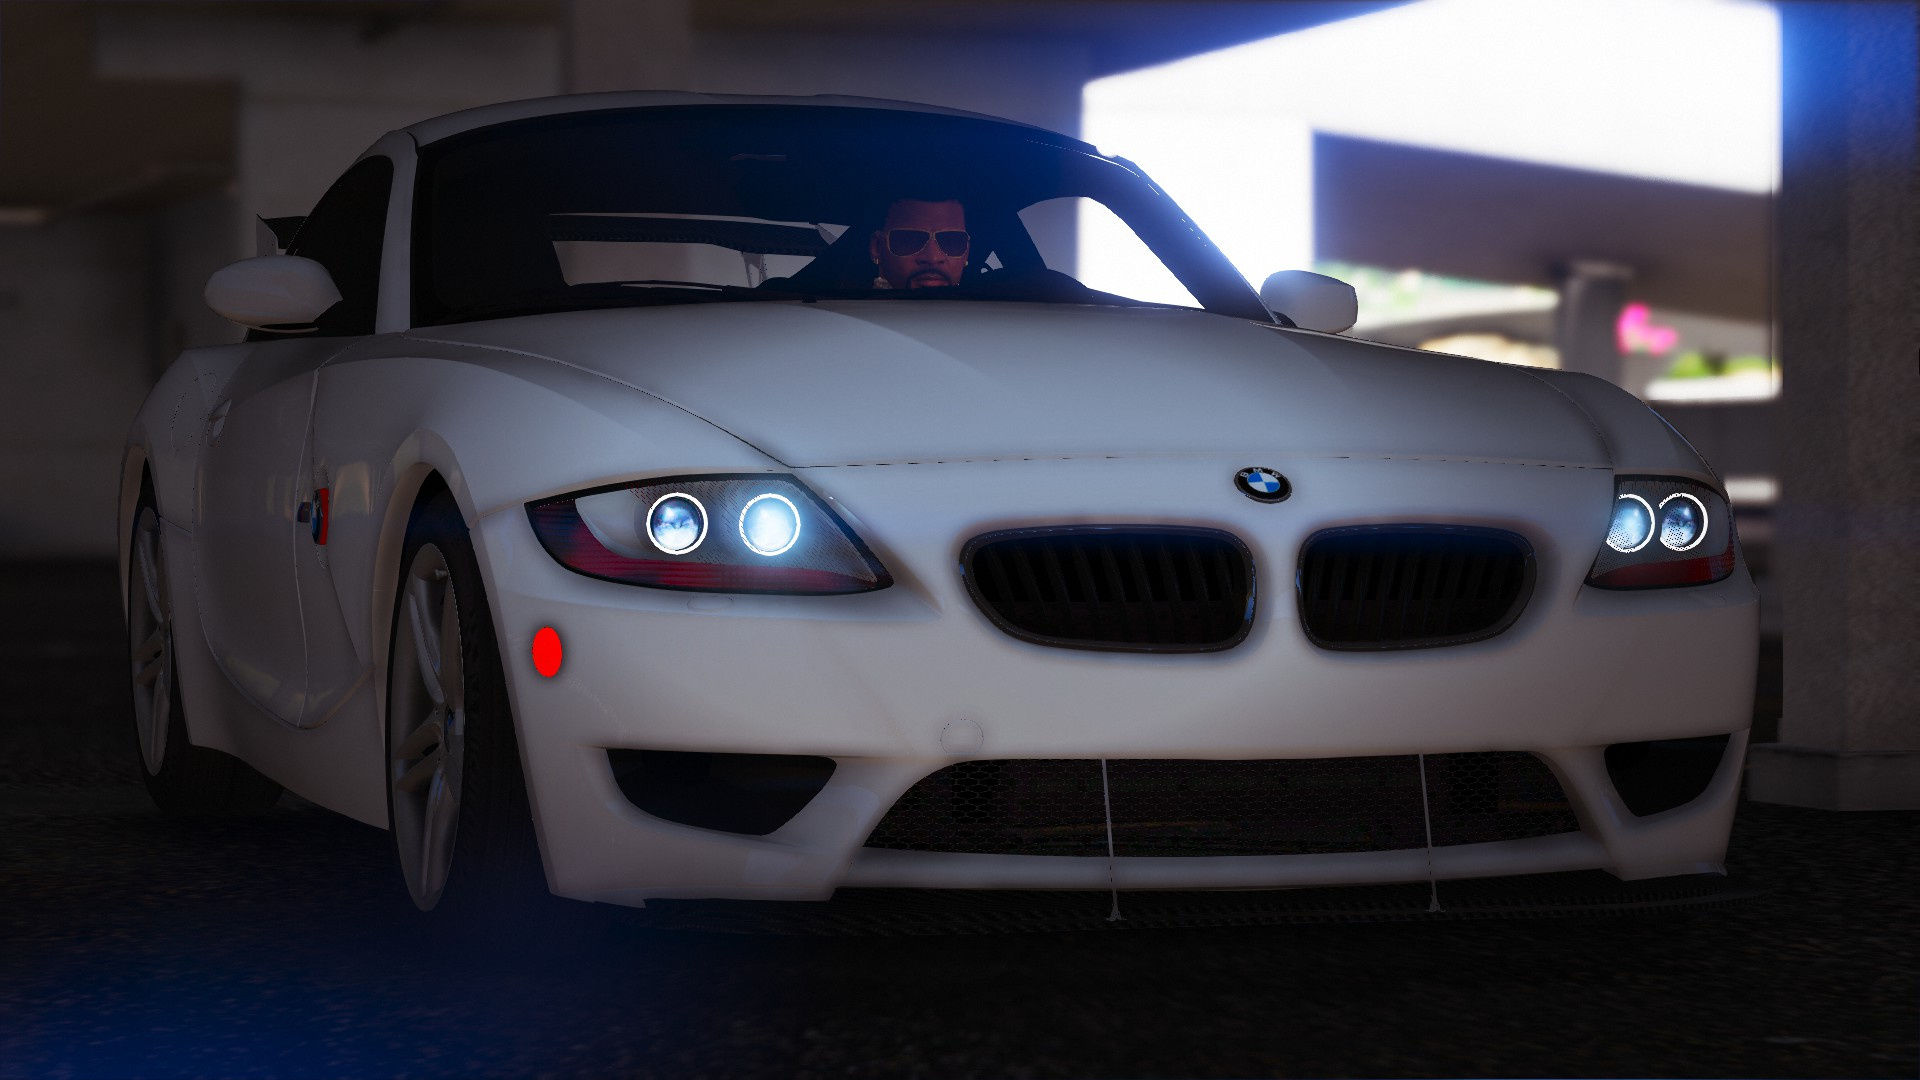 2008 Bmw Z4m E86 Coupe Tuning Hq Engine Gta5 Mods Com